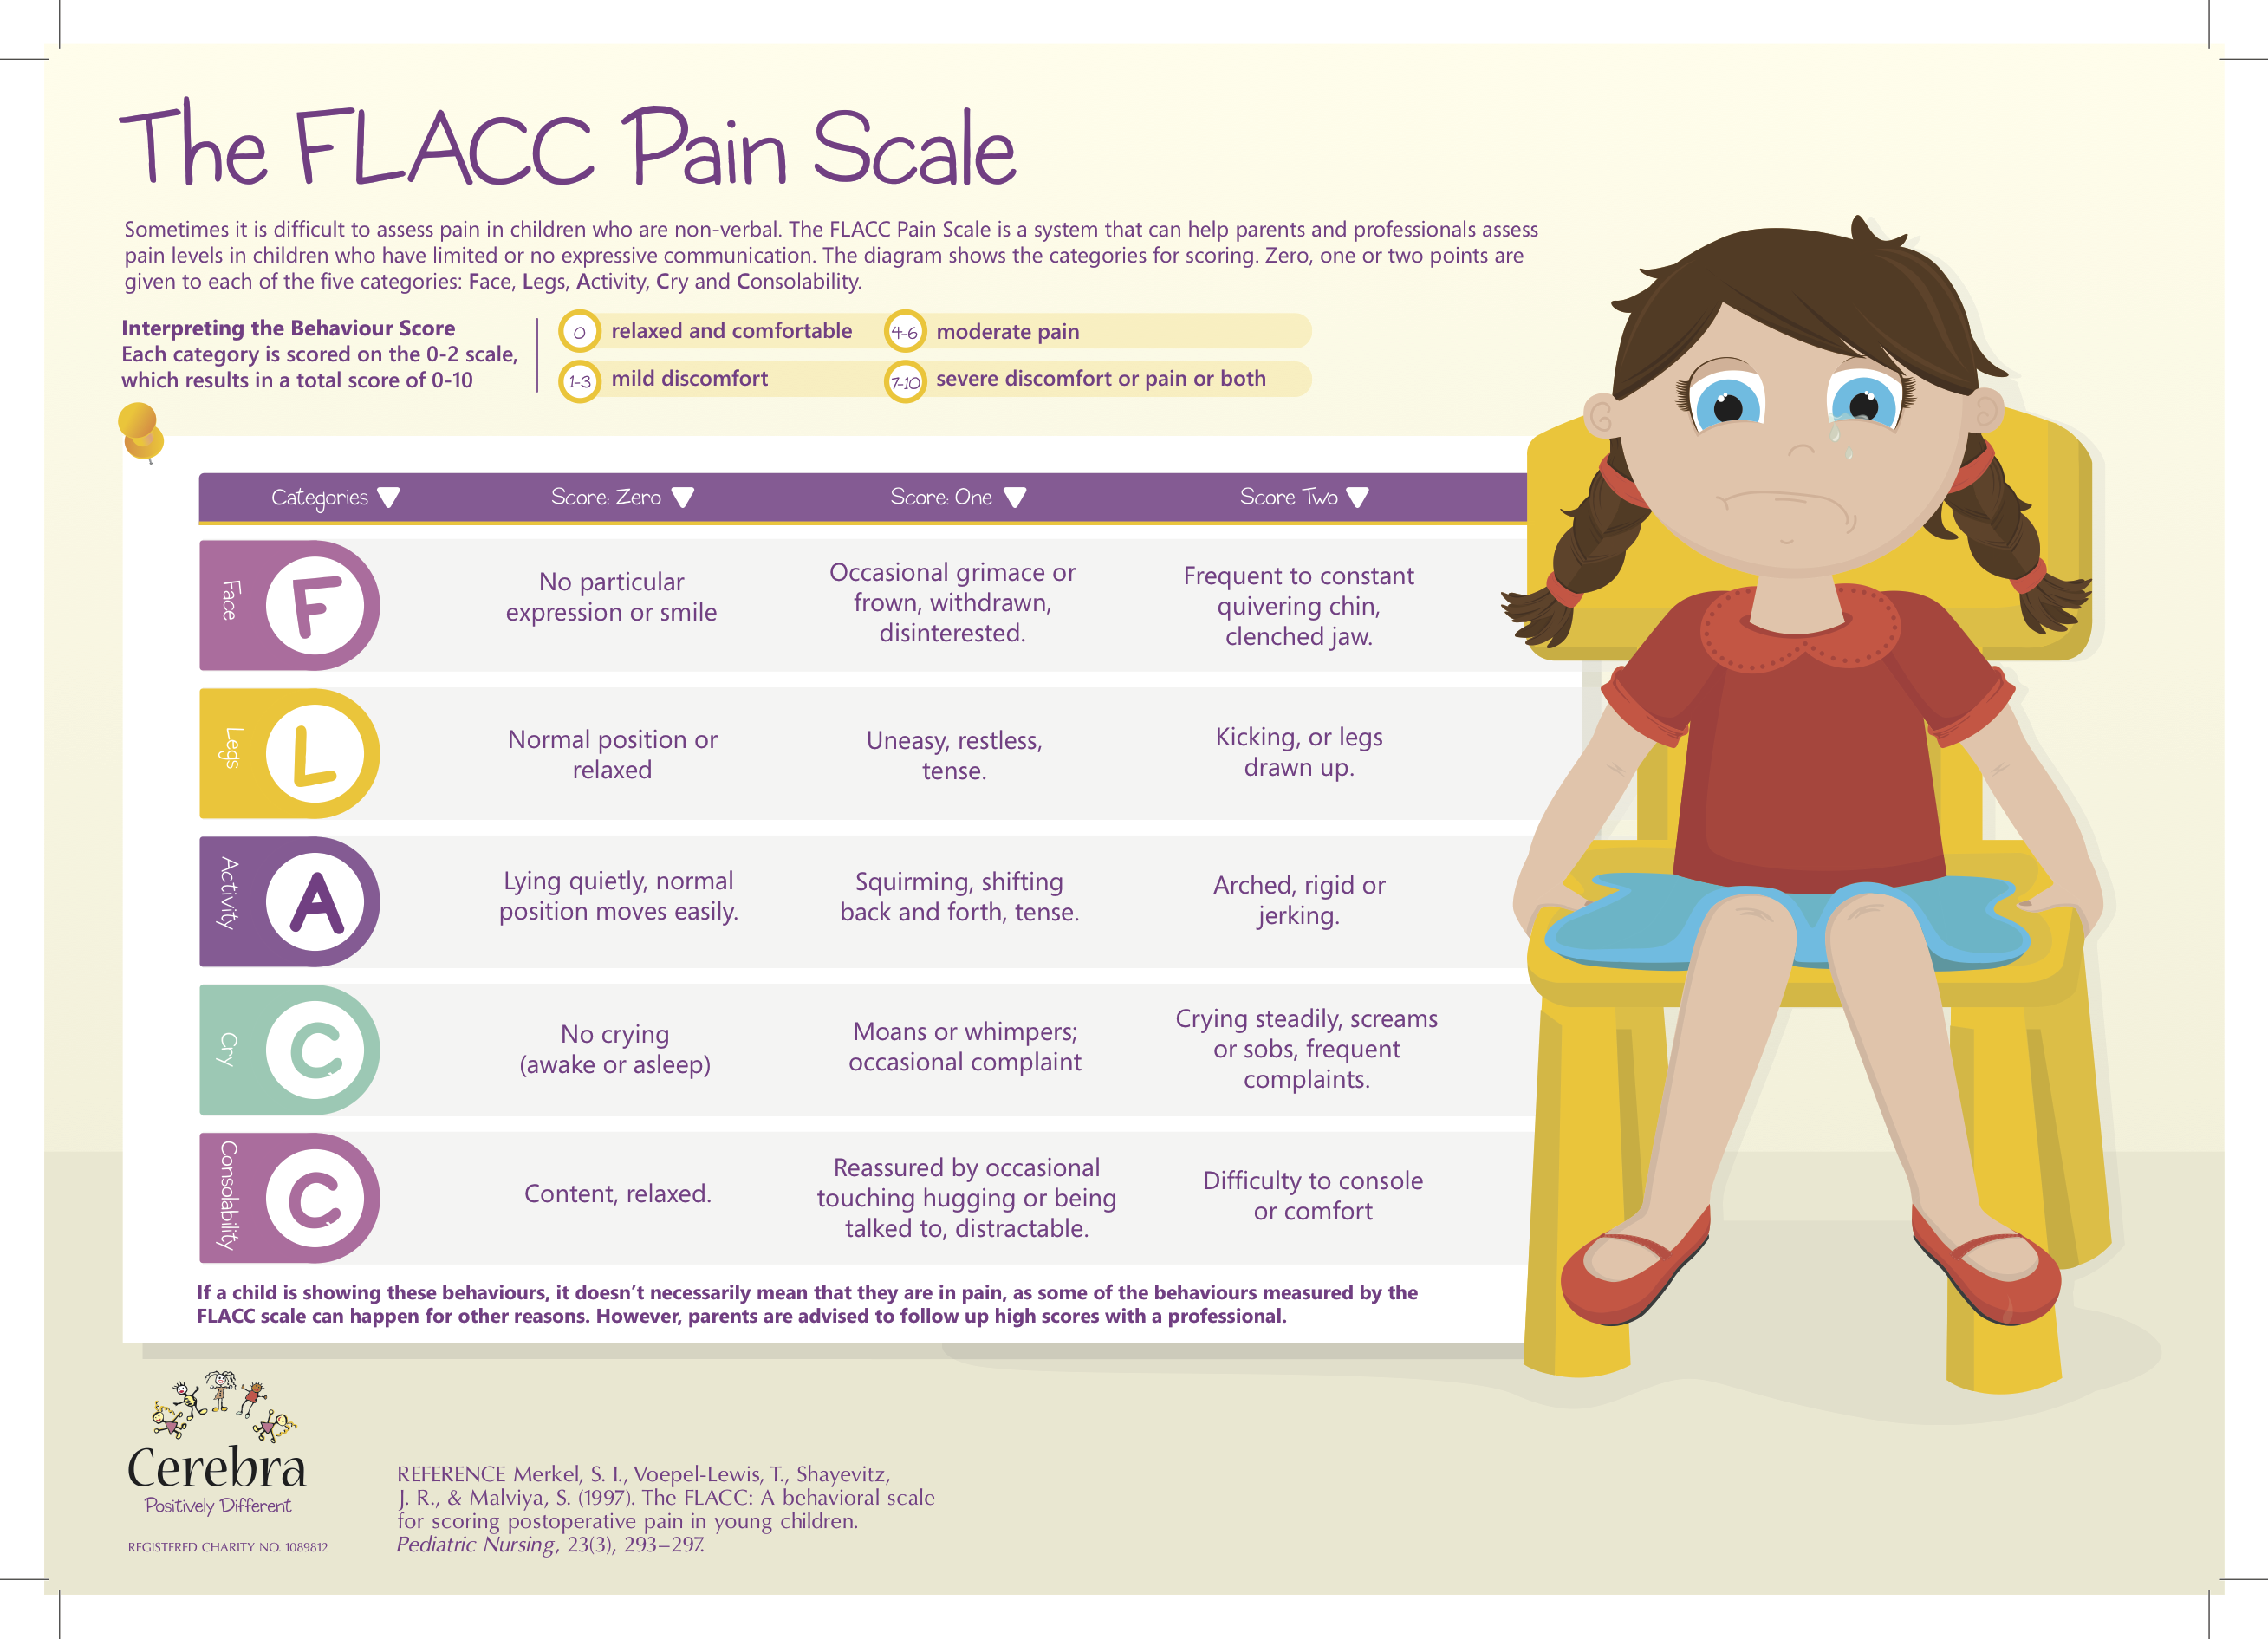 how to assess pain in non verbal children Via Cerebra